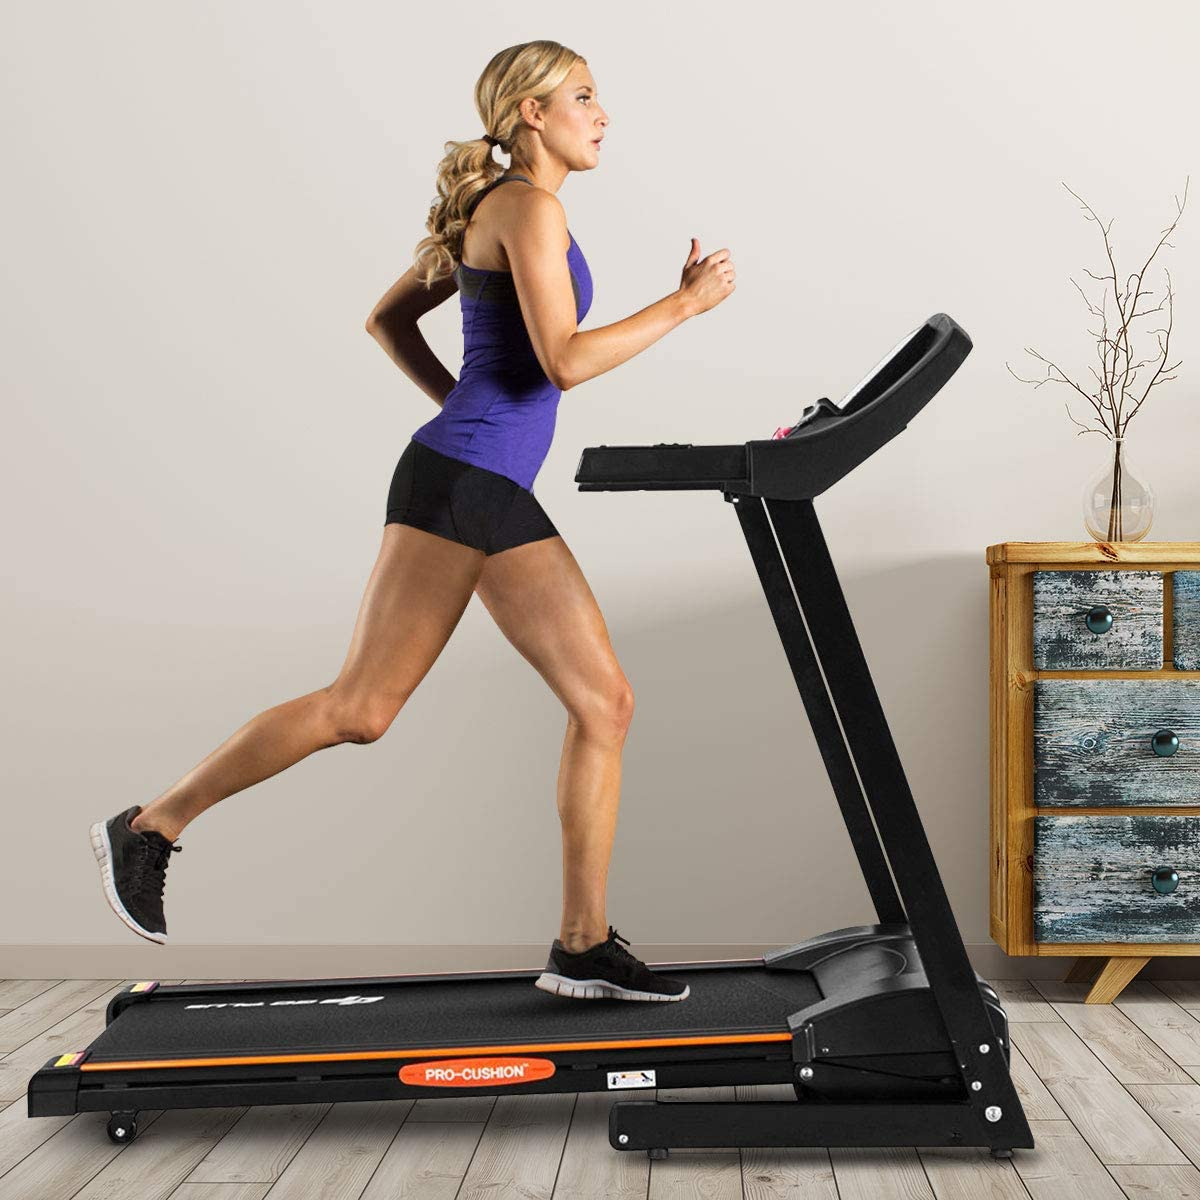 GOPLUS 2.5HP Folding Treadmill Automatic Incline Jogging Running Fitness Machine with App Control, Large LCD Display